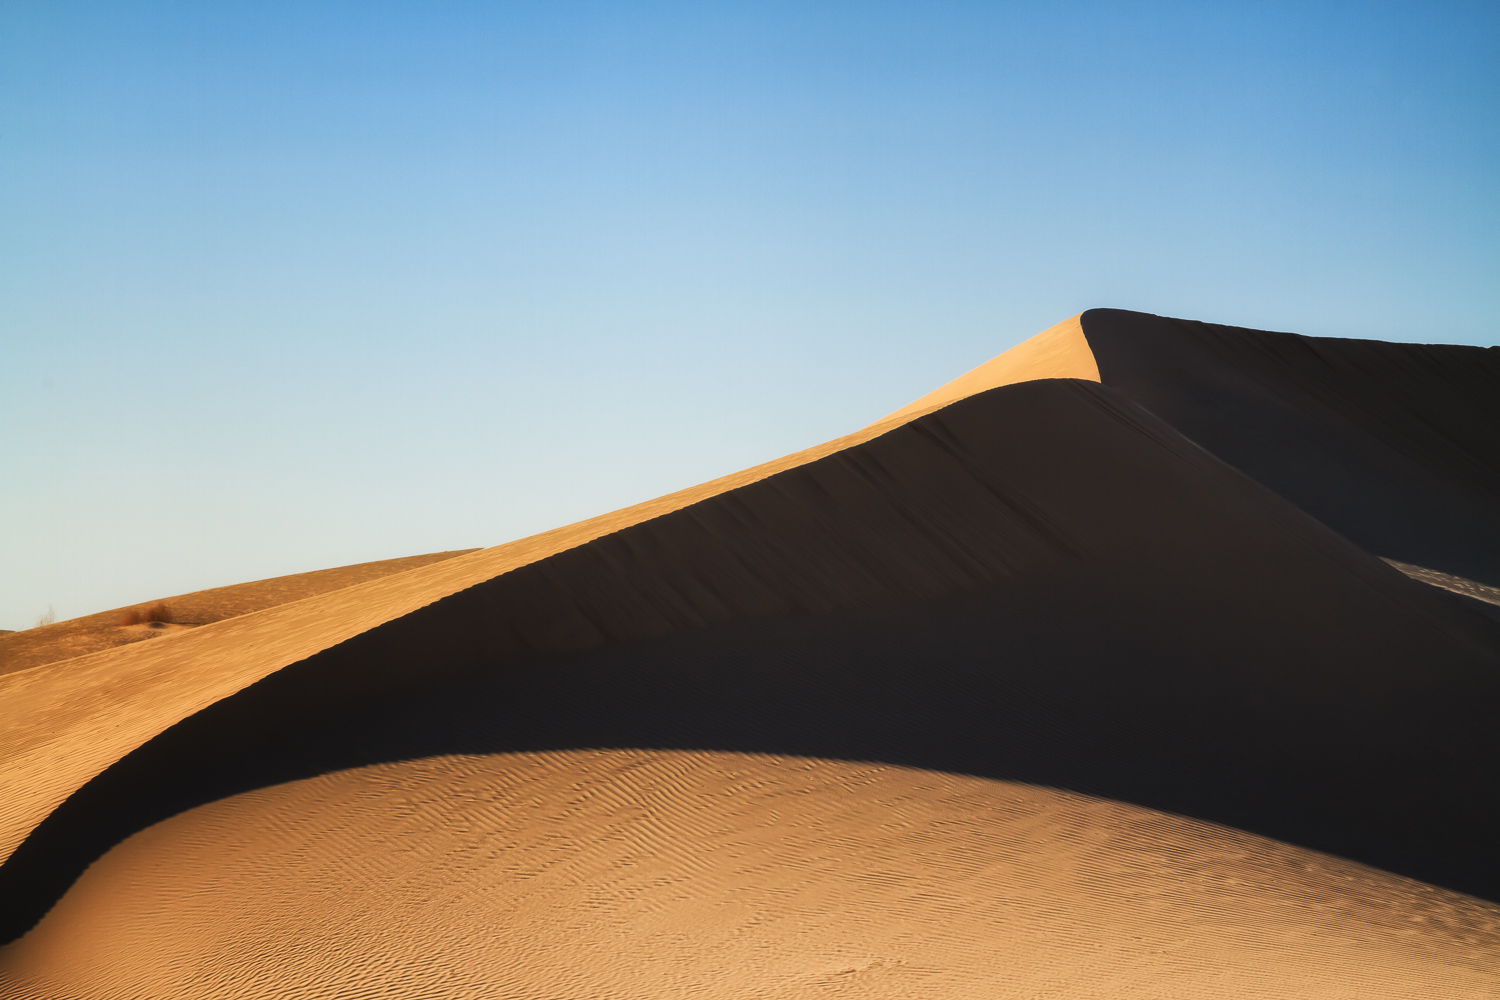 https://i2.wp.com/digital-photography-school.com/wp-content/uploads/2018/06/shadow_on_the_dunes.jpg?resize=1500%2C1000&ssl=1